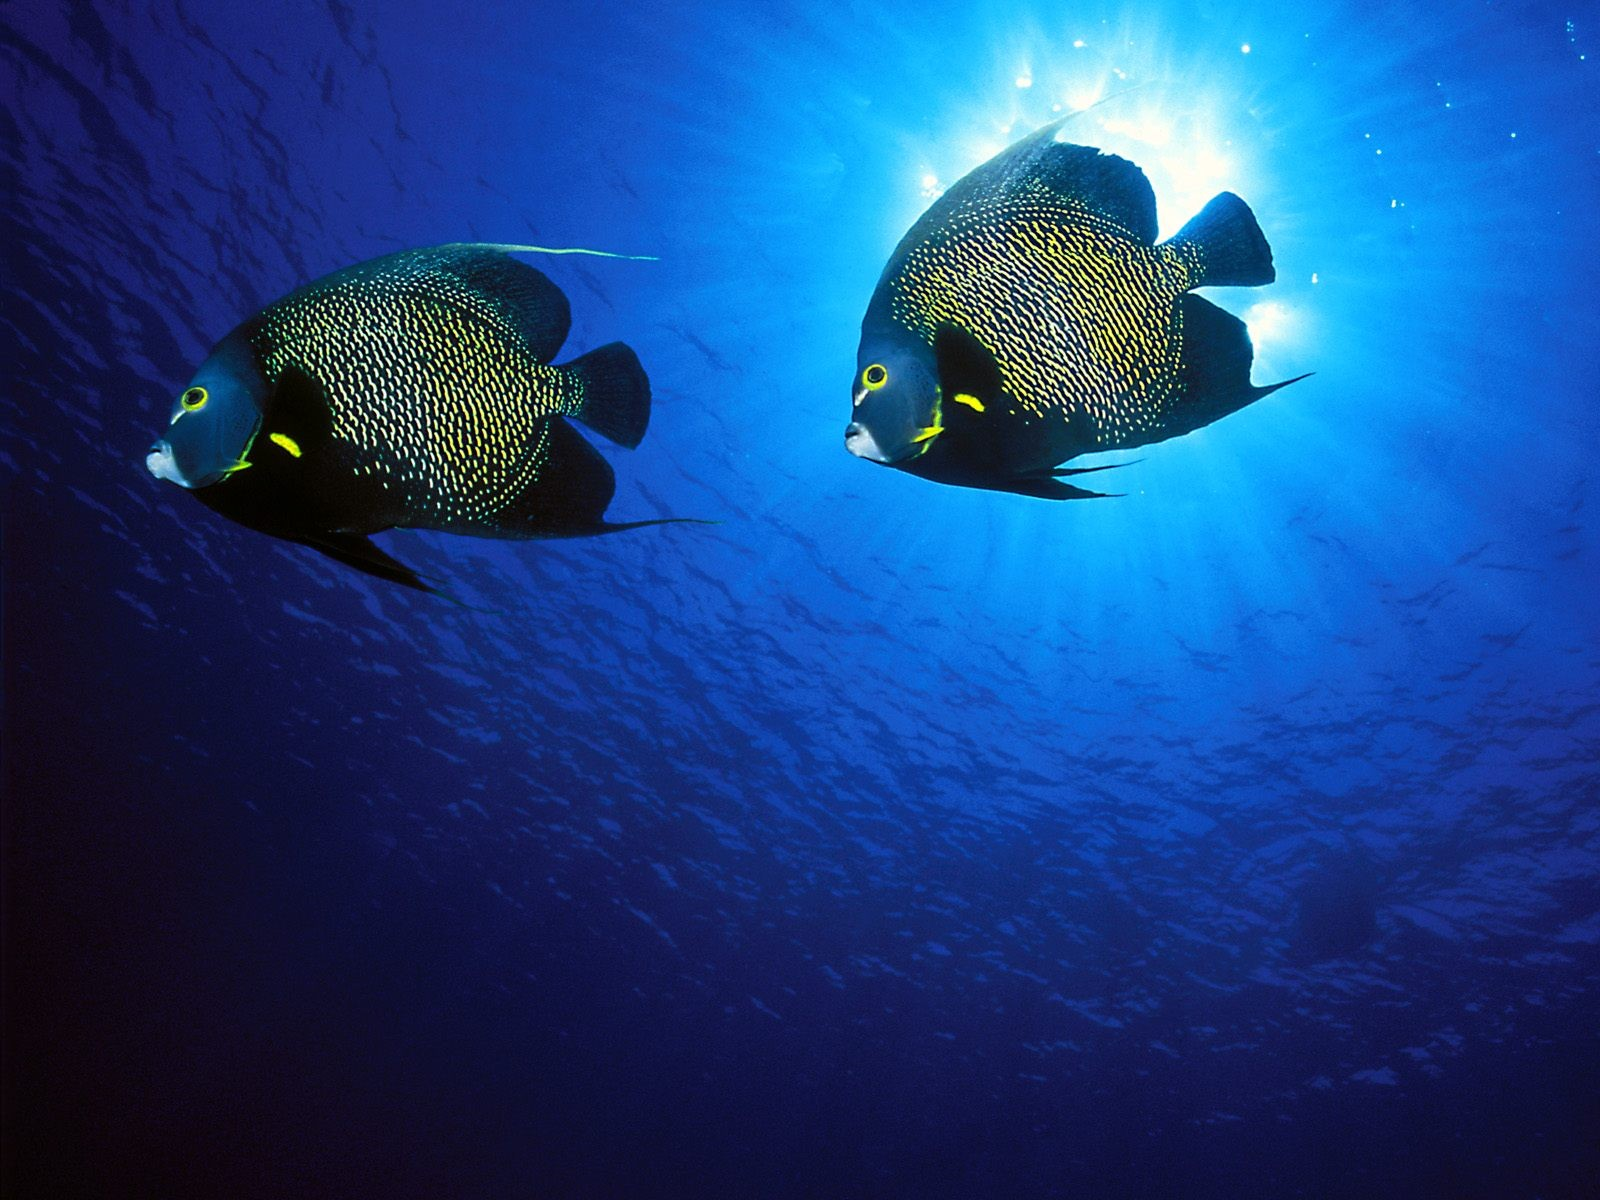 Yellow Spotted Fish Wallpaper 1600x1200 px